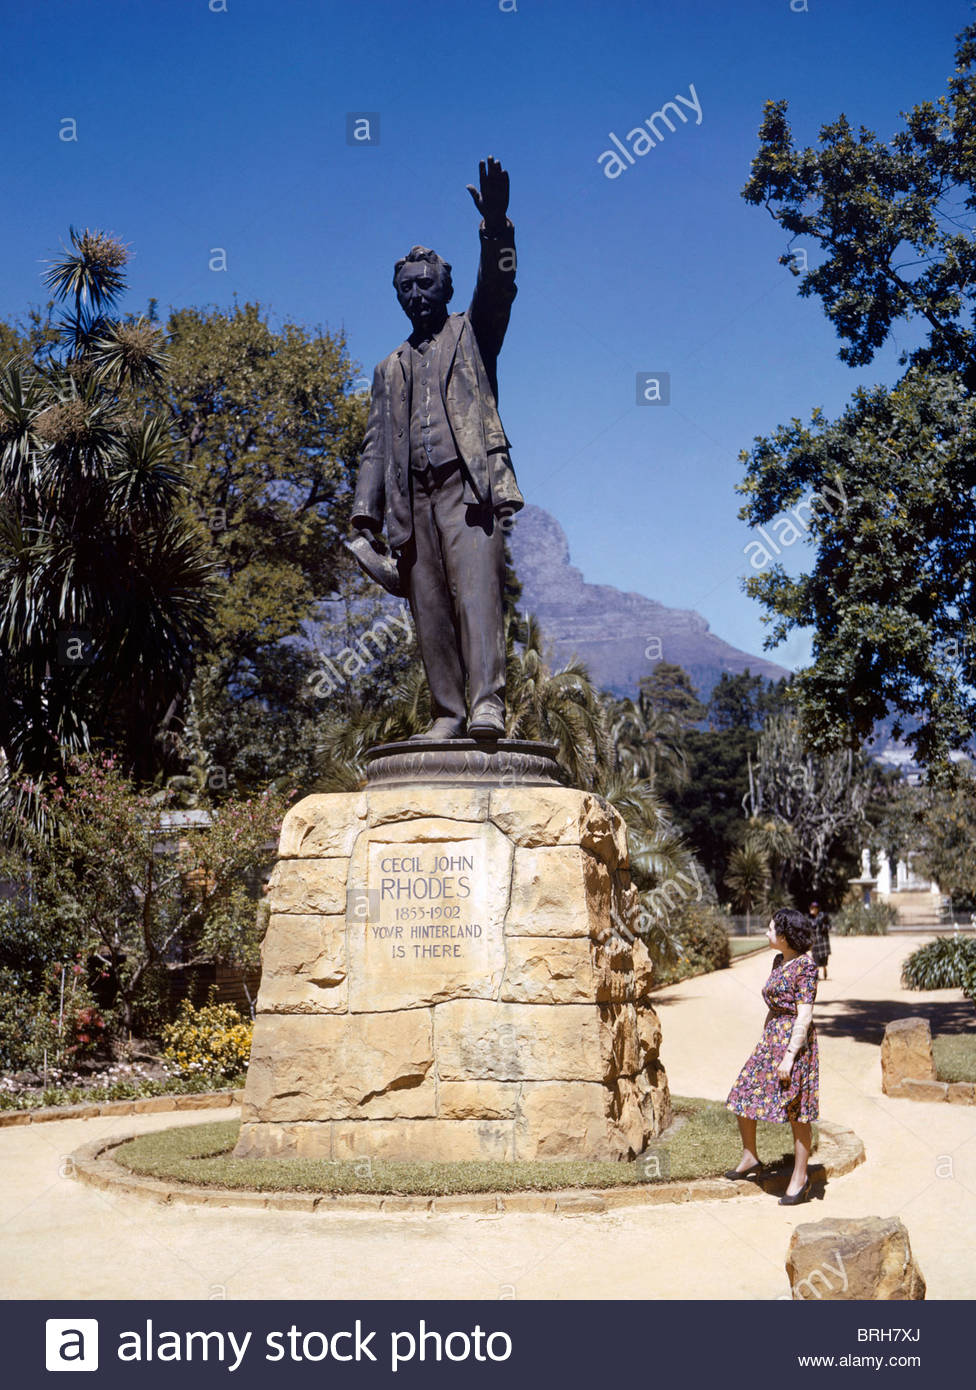 A woman looks up at a statue of Cecil John Rhodes. - Stock Image